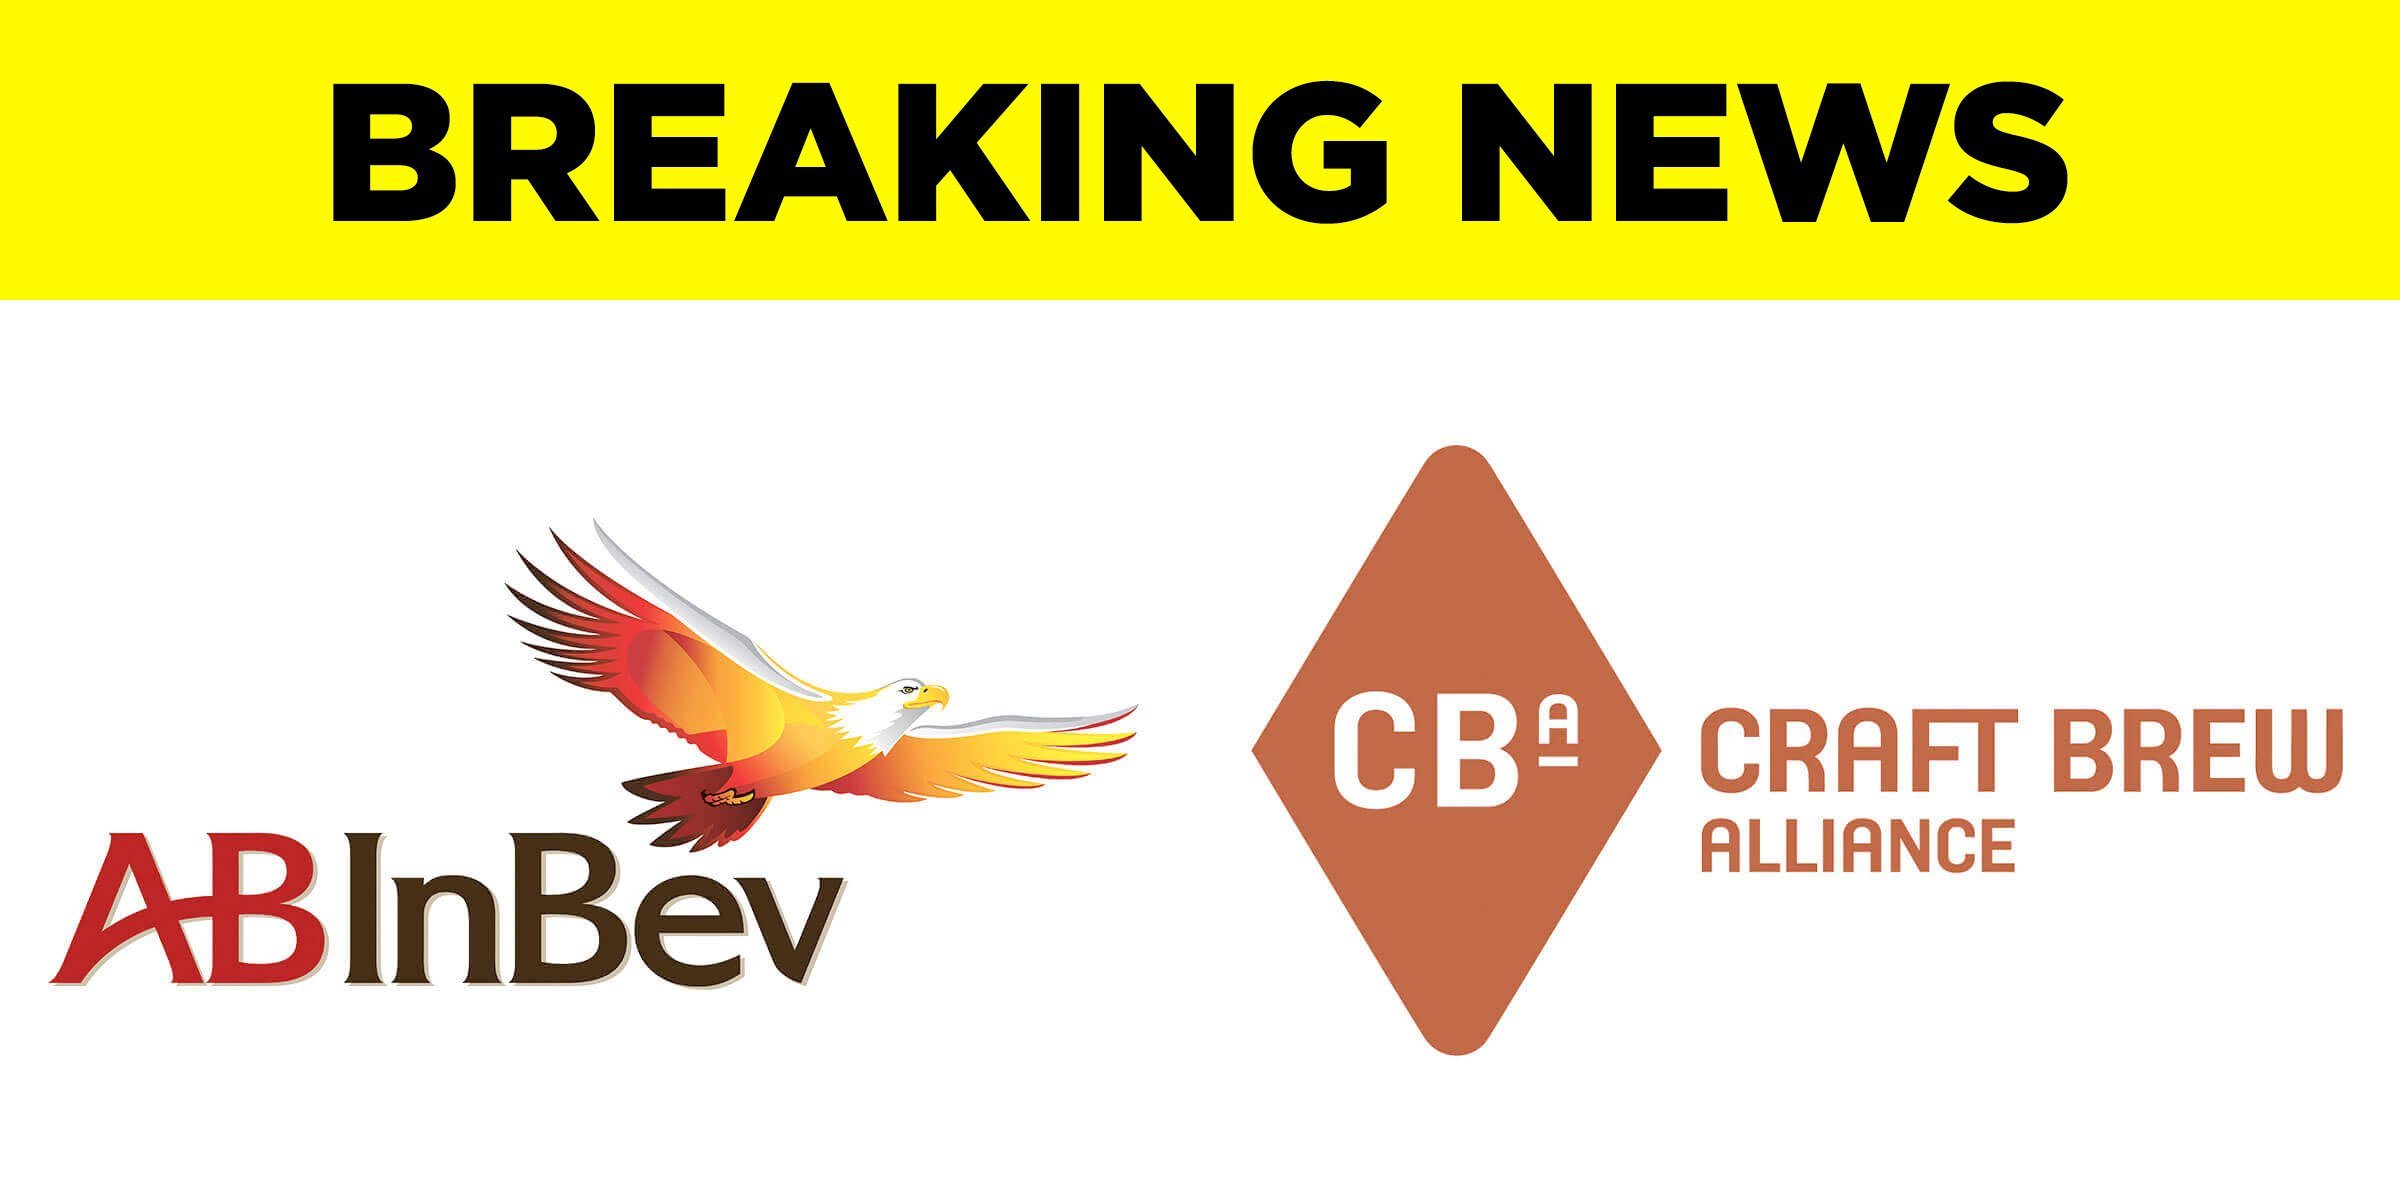 Anheuser-Busch InBev and Craft Brew Alliance announced today that the world's largest beer company will acquire the remaining 68.8% stake of CBA.